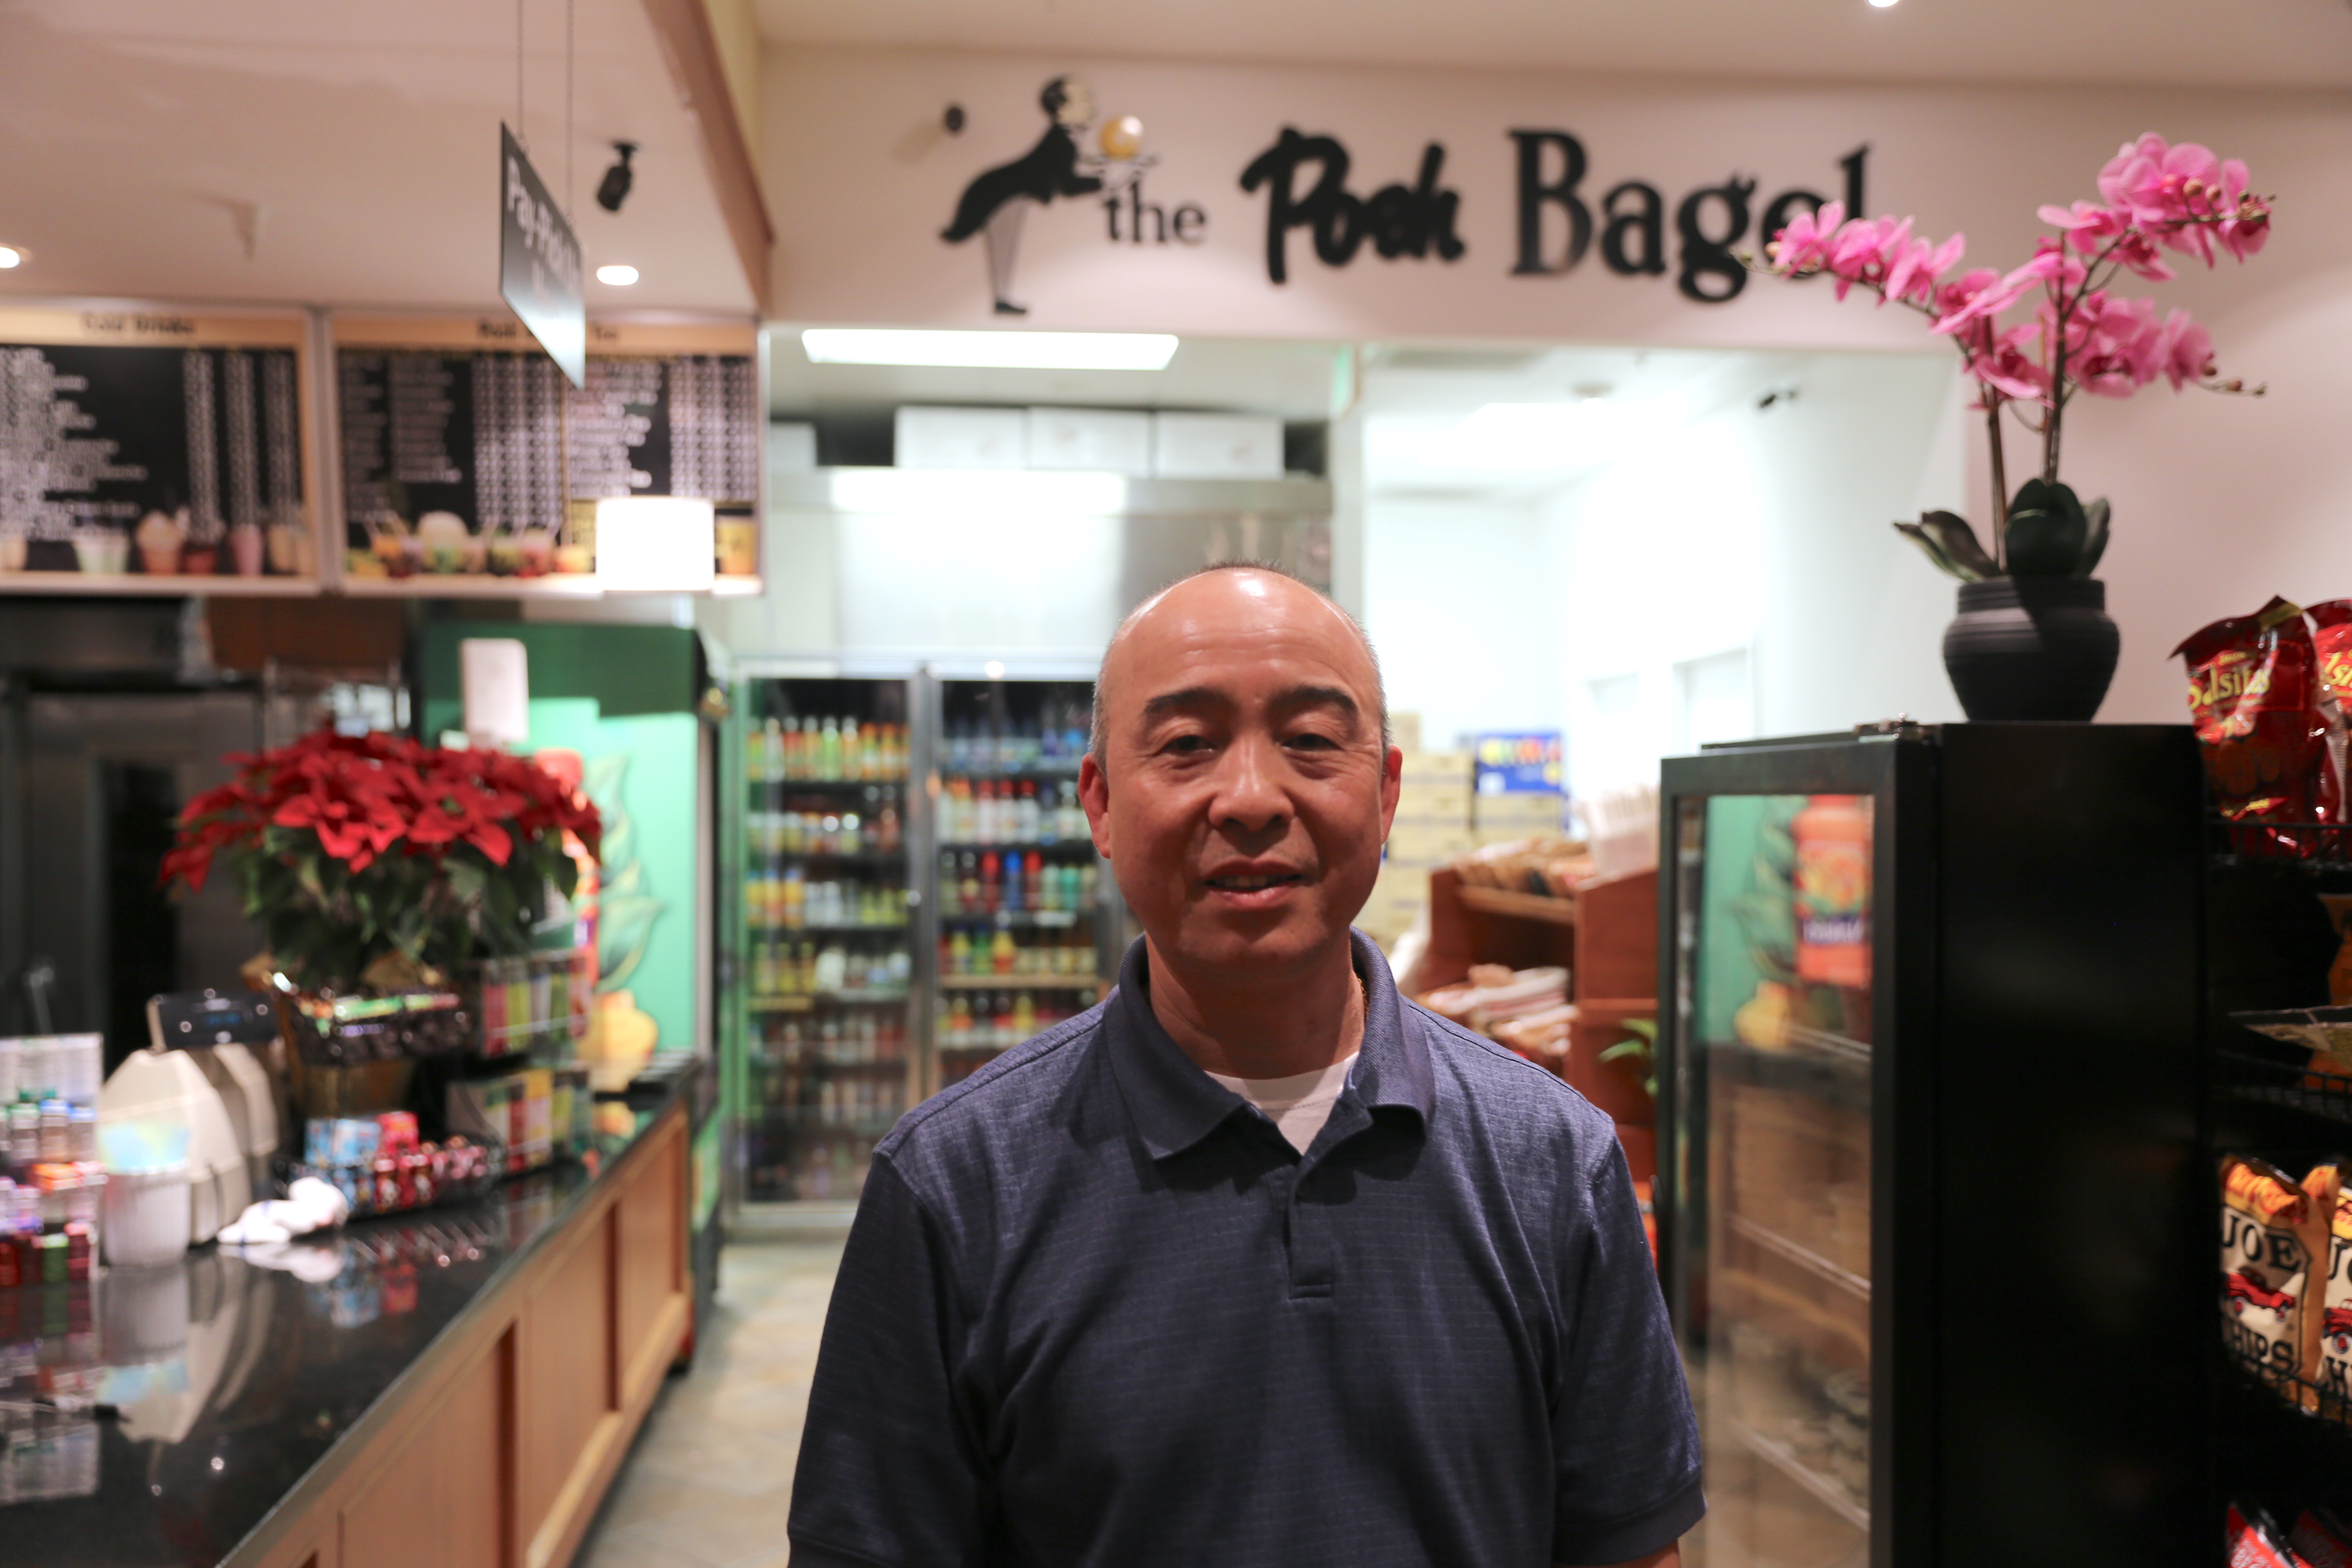 Posh Bagel's Anthony Lao Shares His Refugee Story